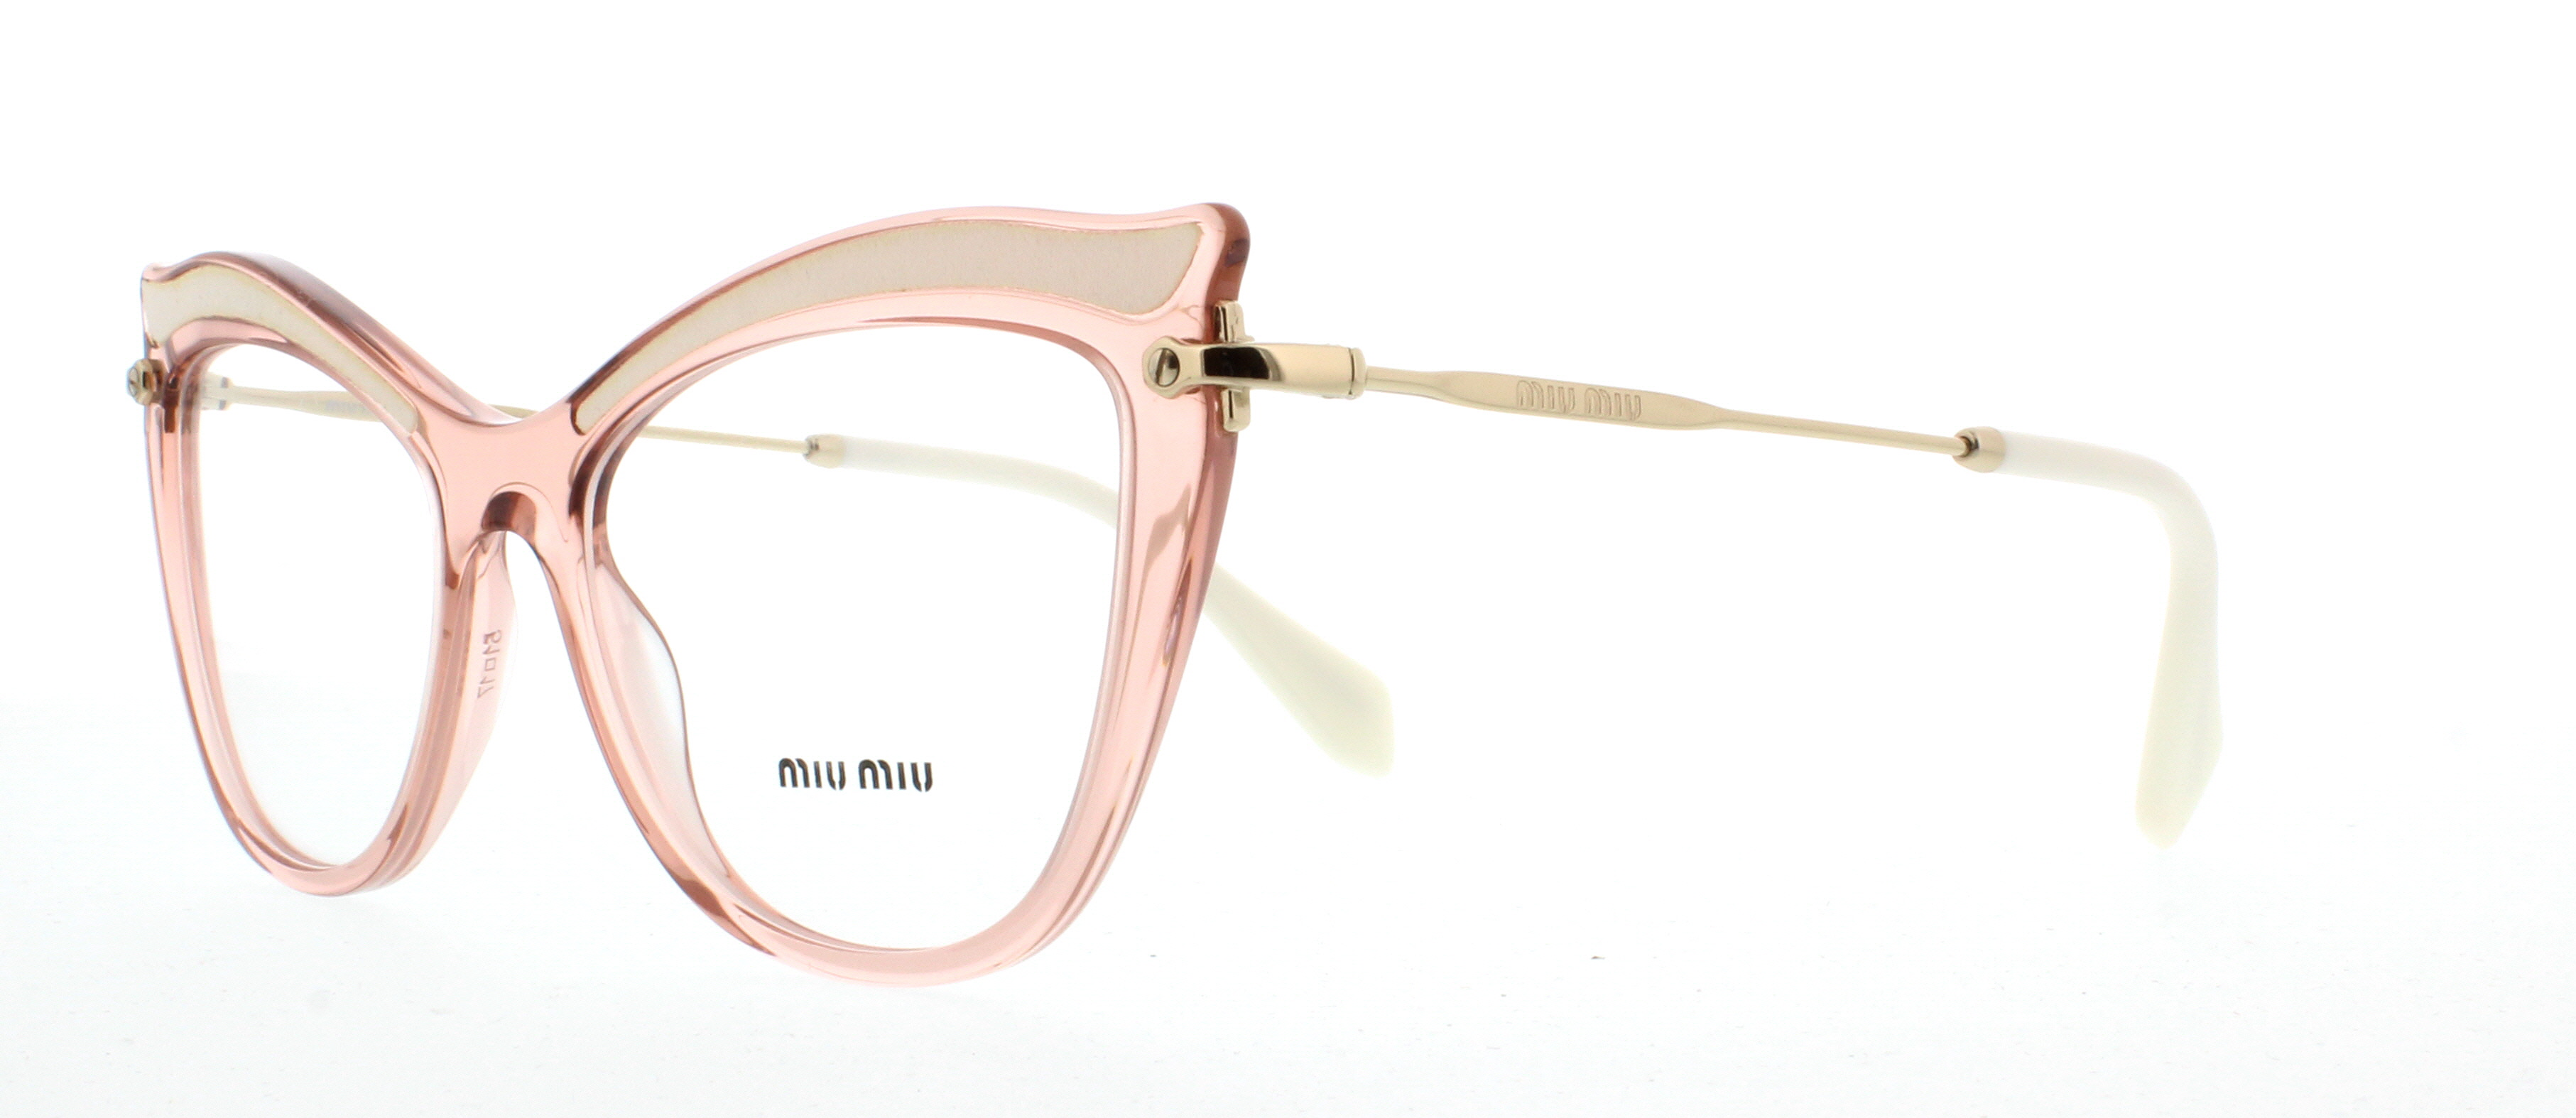 6688099a796 Miu Miu Sunglasses Case Ebay